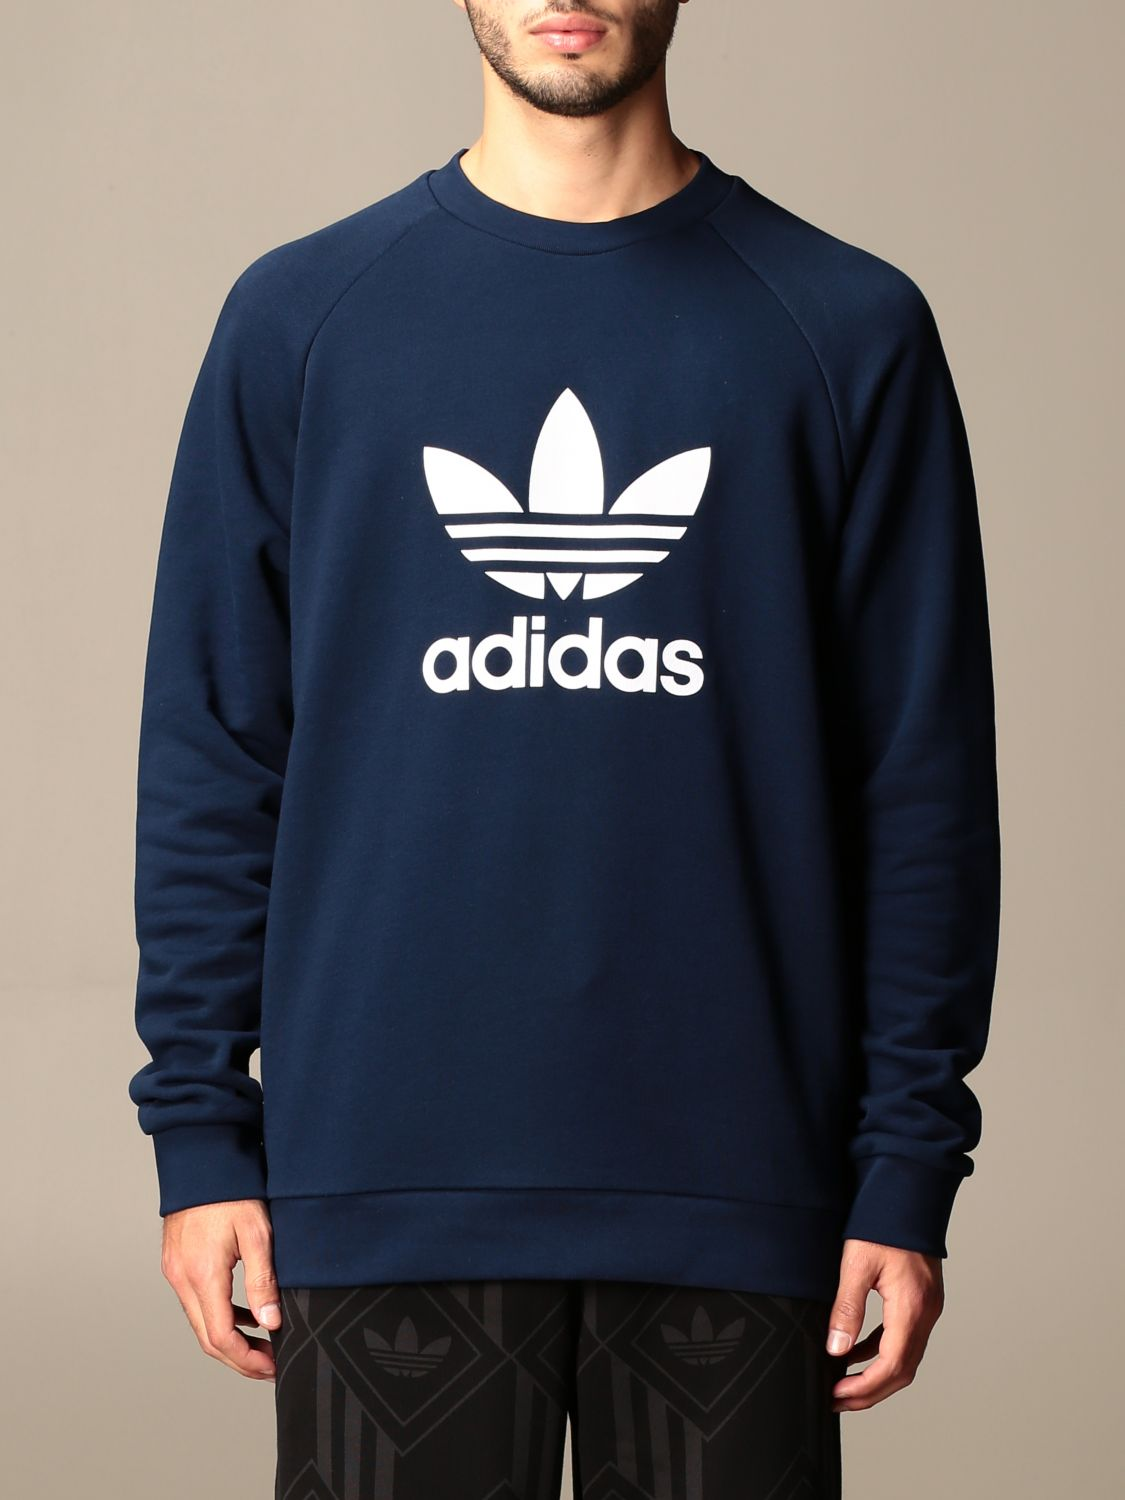 Sweatshirt Adidas Originals: Sweatshirt men Adidas Originals navy 1